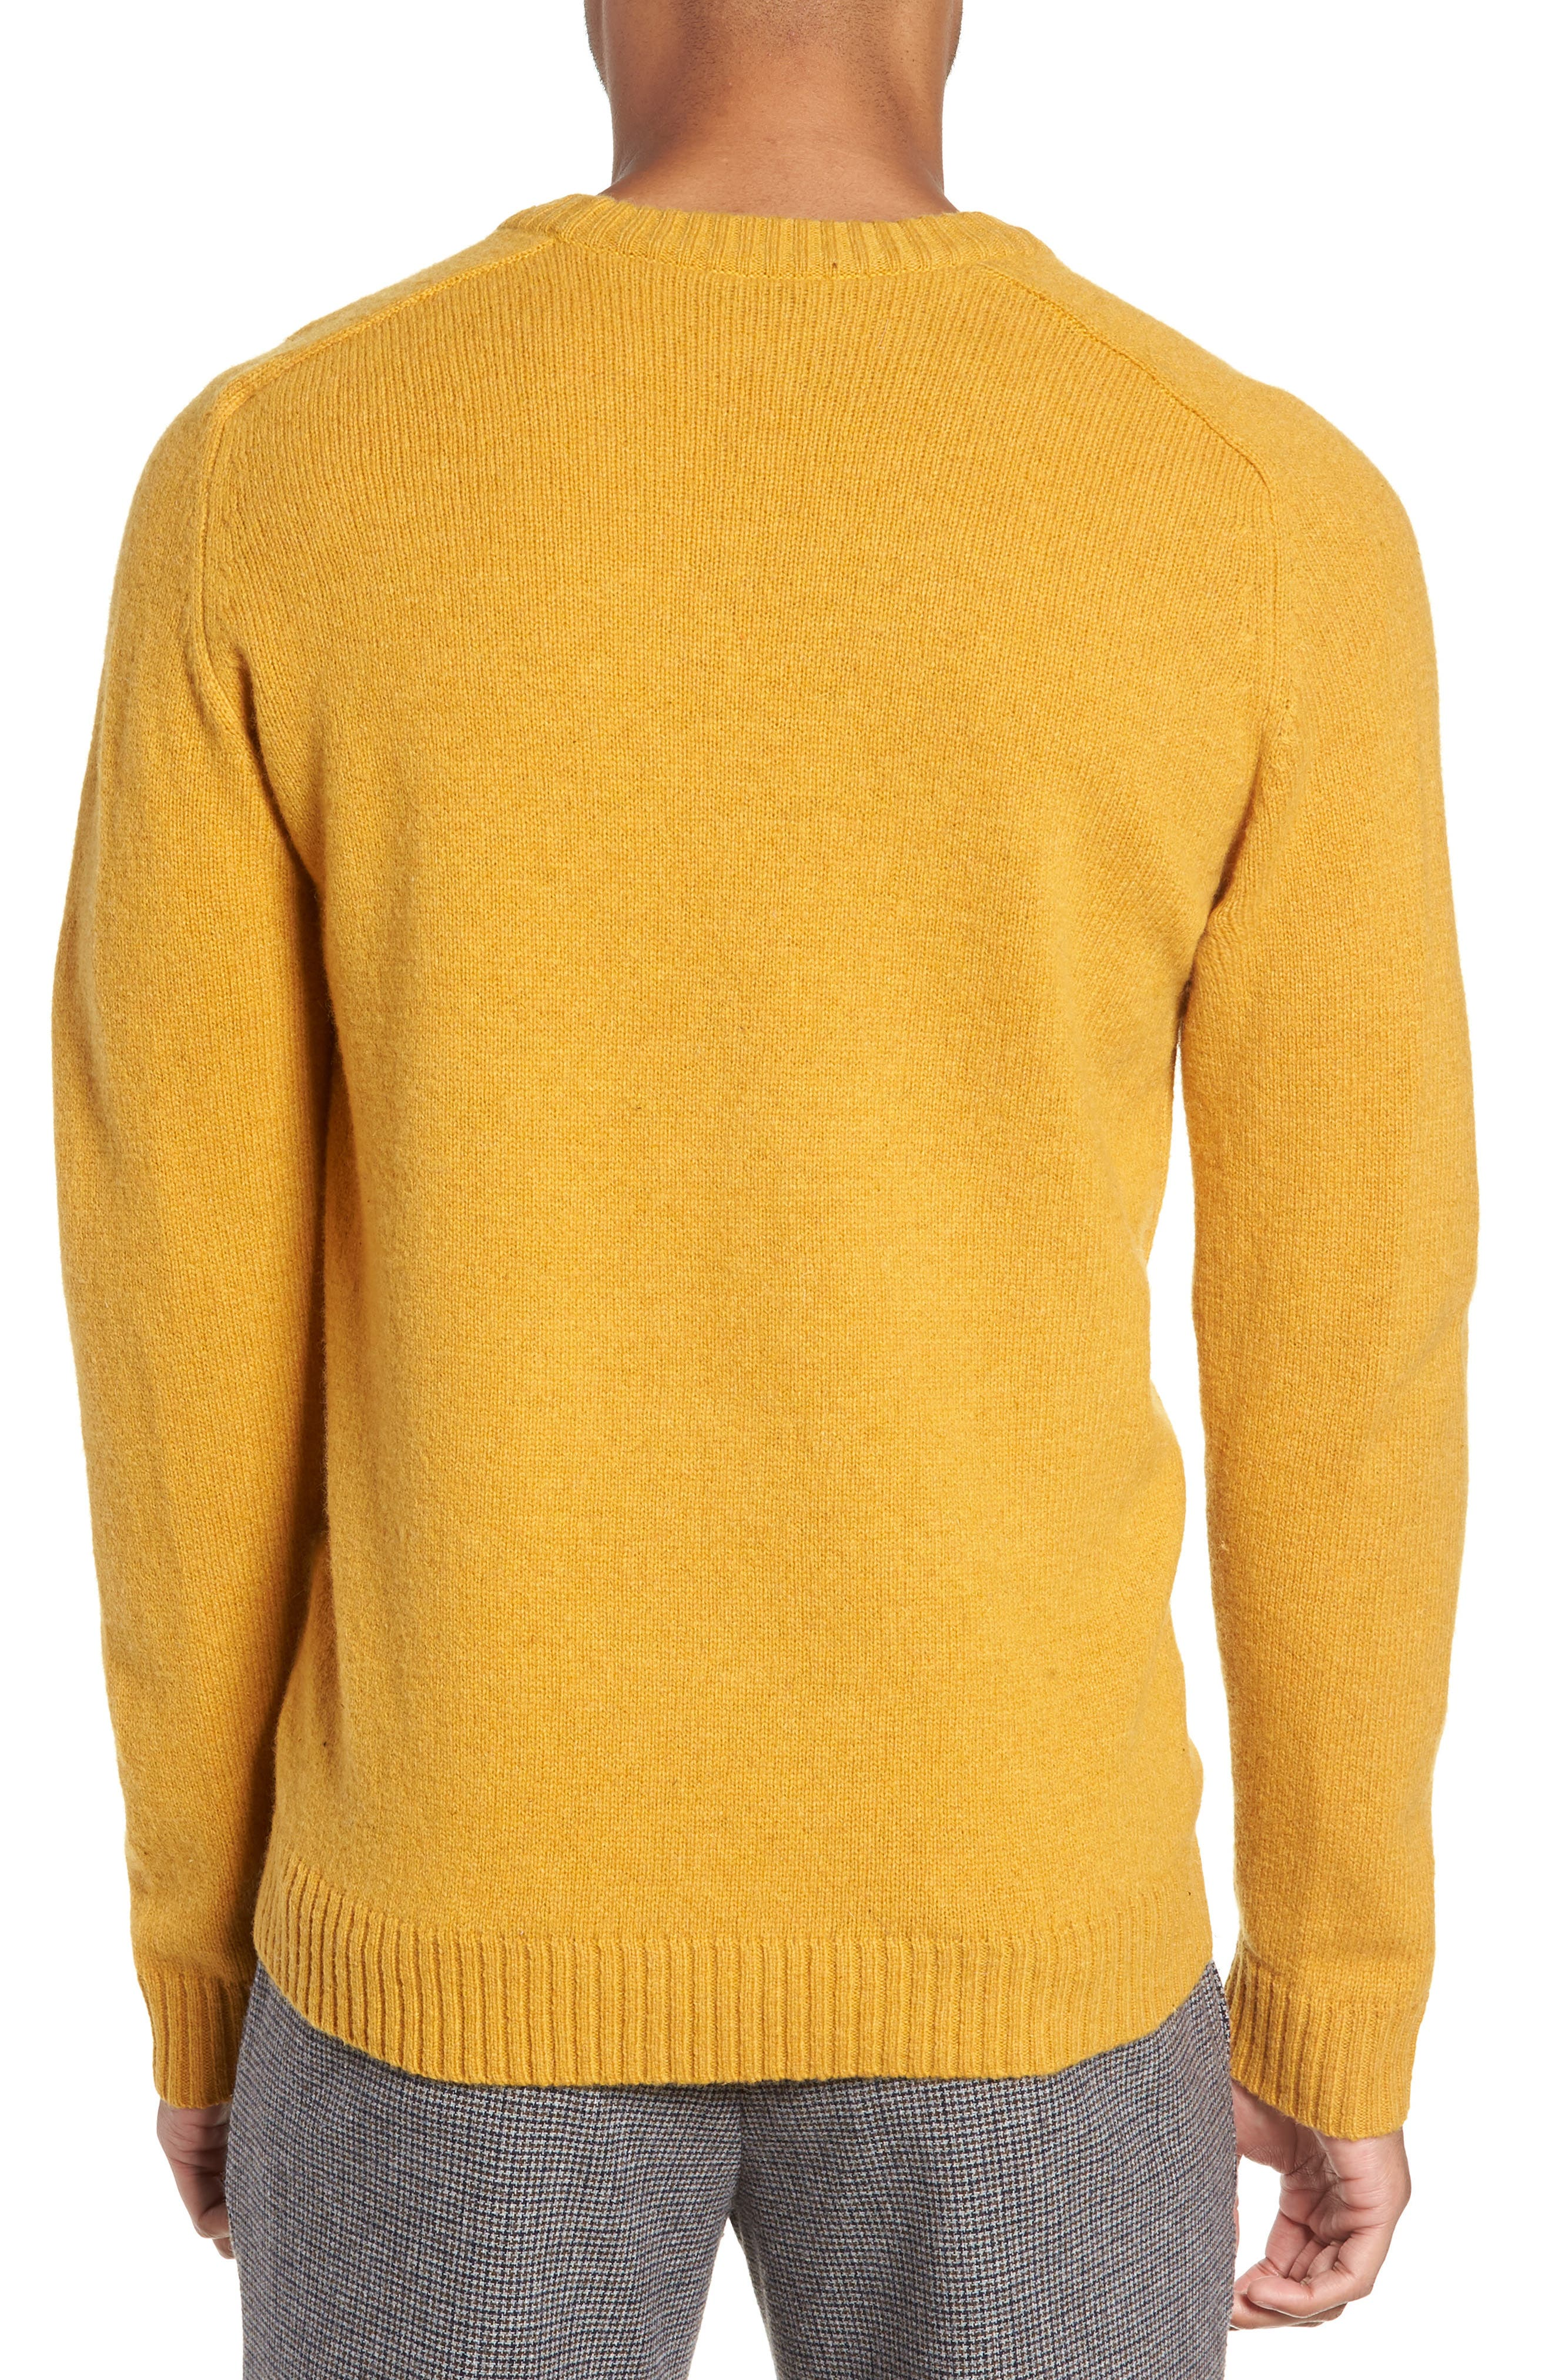 New Coban Regular Fit Wool Sweater,                             Alternate thumbnail 2, color,                             CURRY